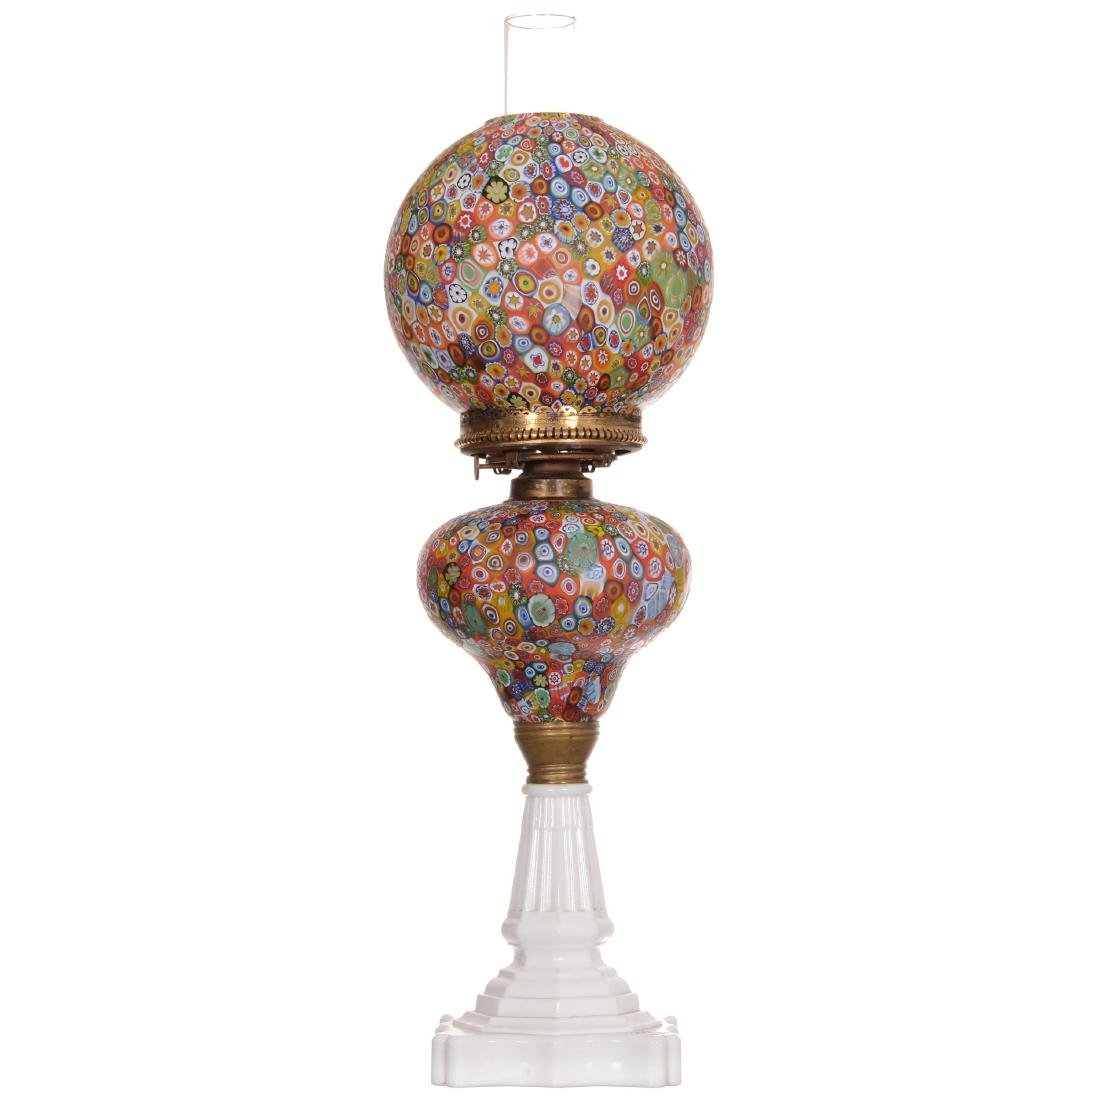 Antique Millefiori Art Glass Banquet Lamp